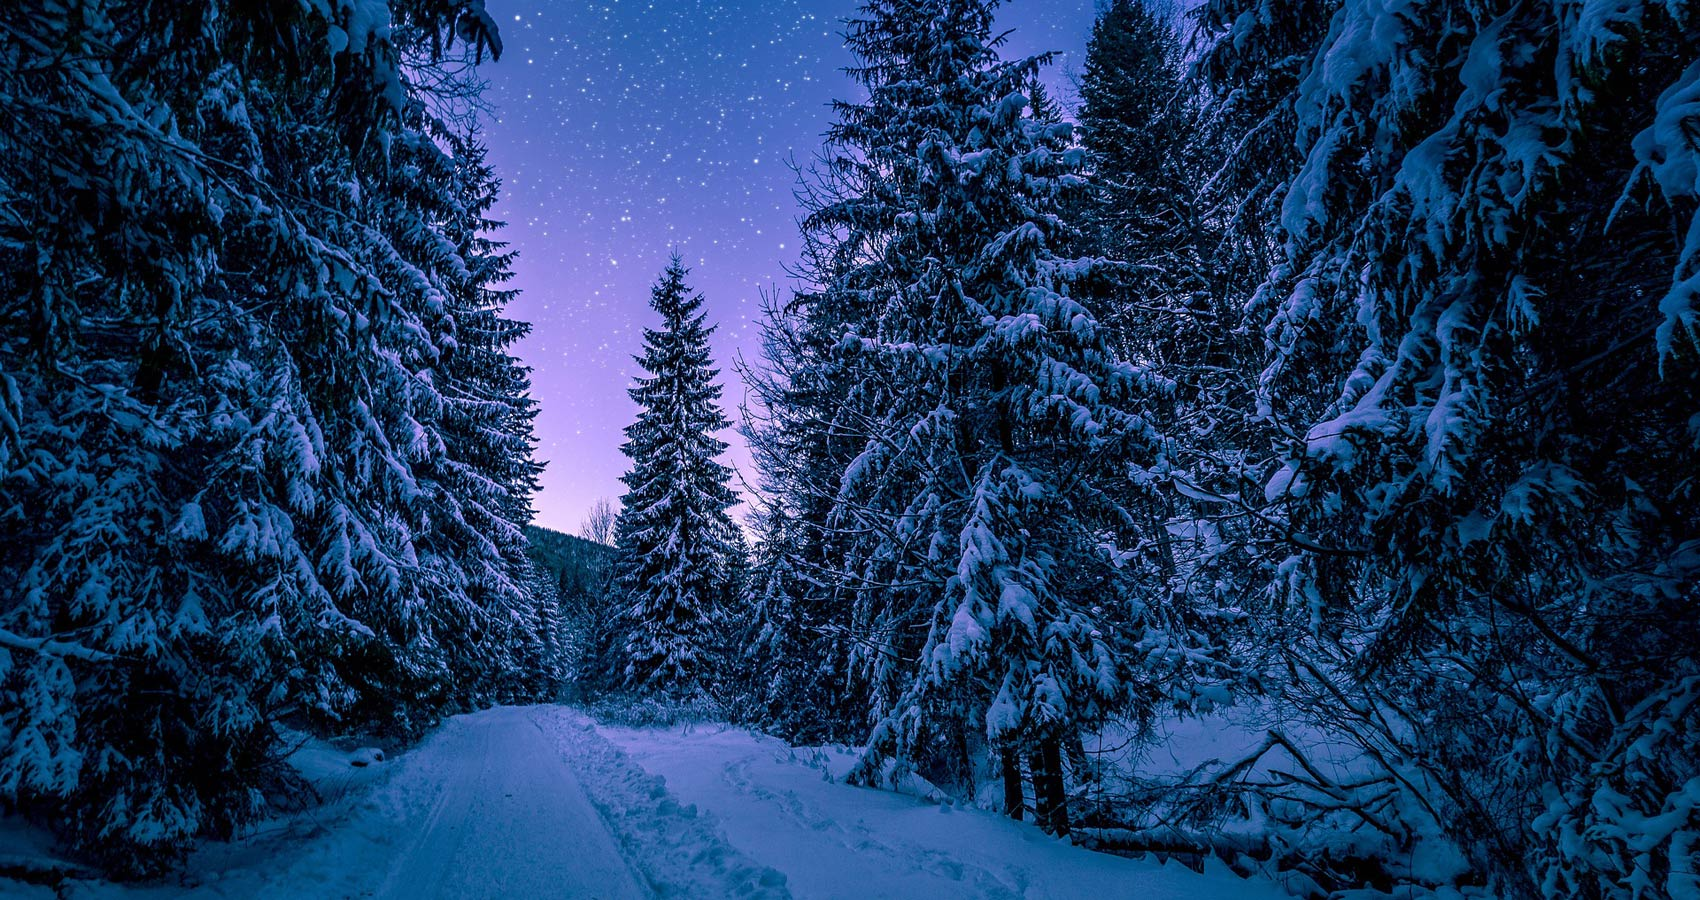 The Silence of Snow, a short story by Kate Aranda Nye at Spillwords.com